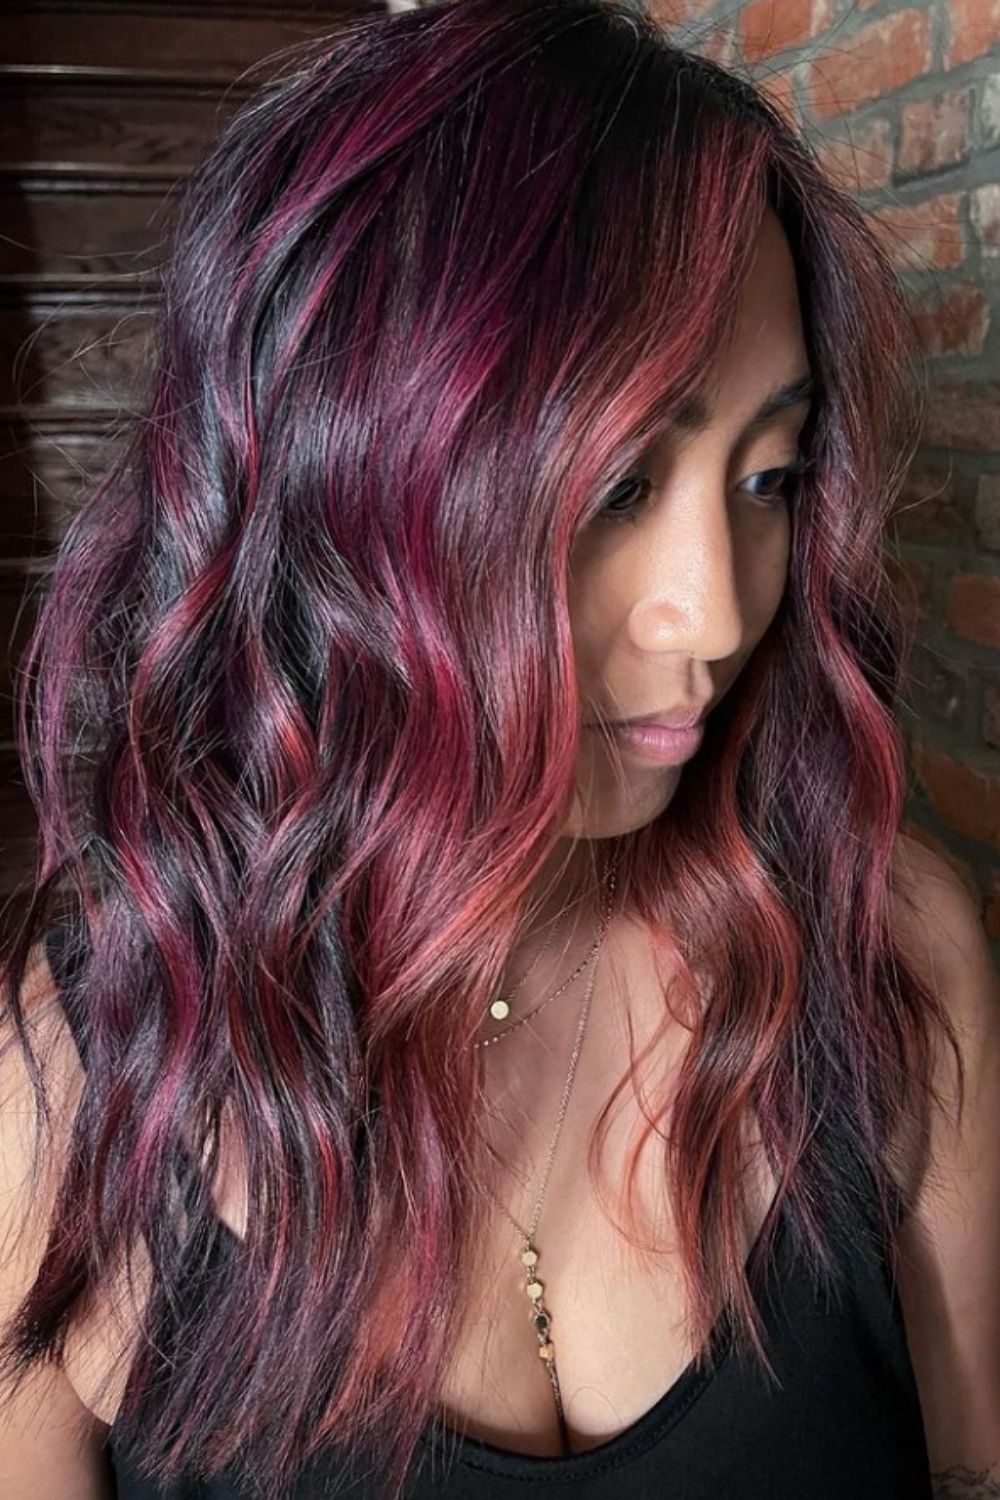 Redombrehair | Fabulous hair colors and hairstyles 2021